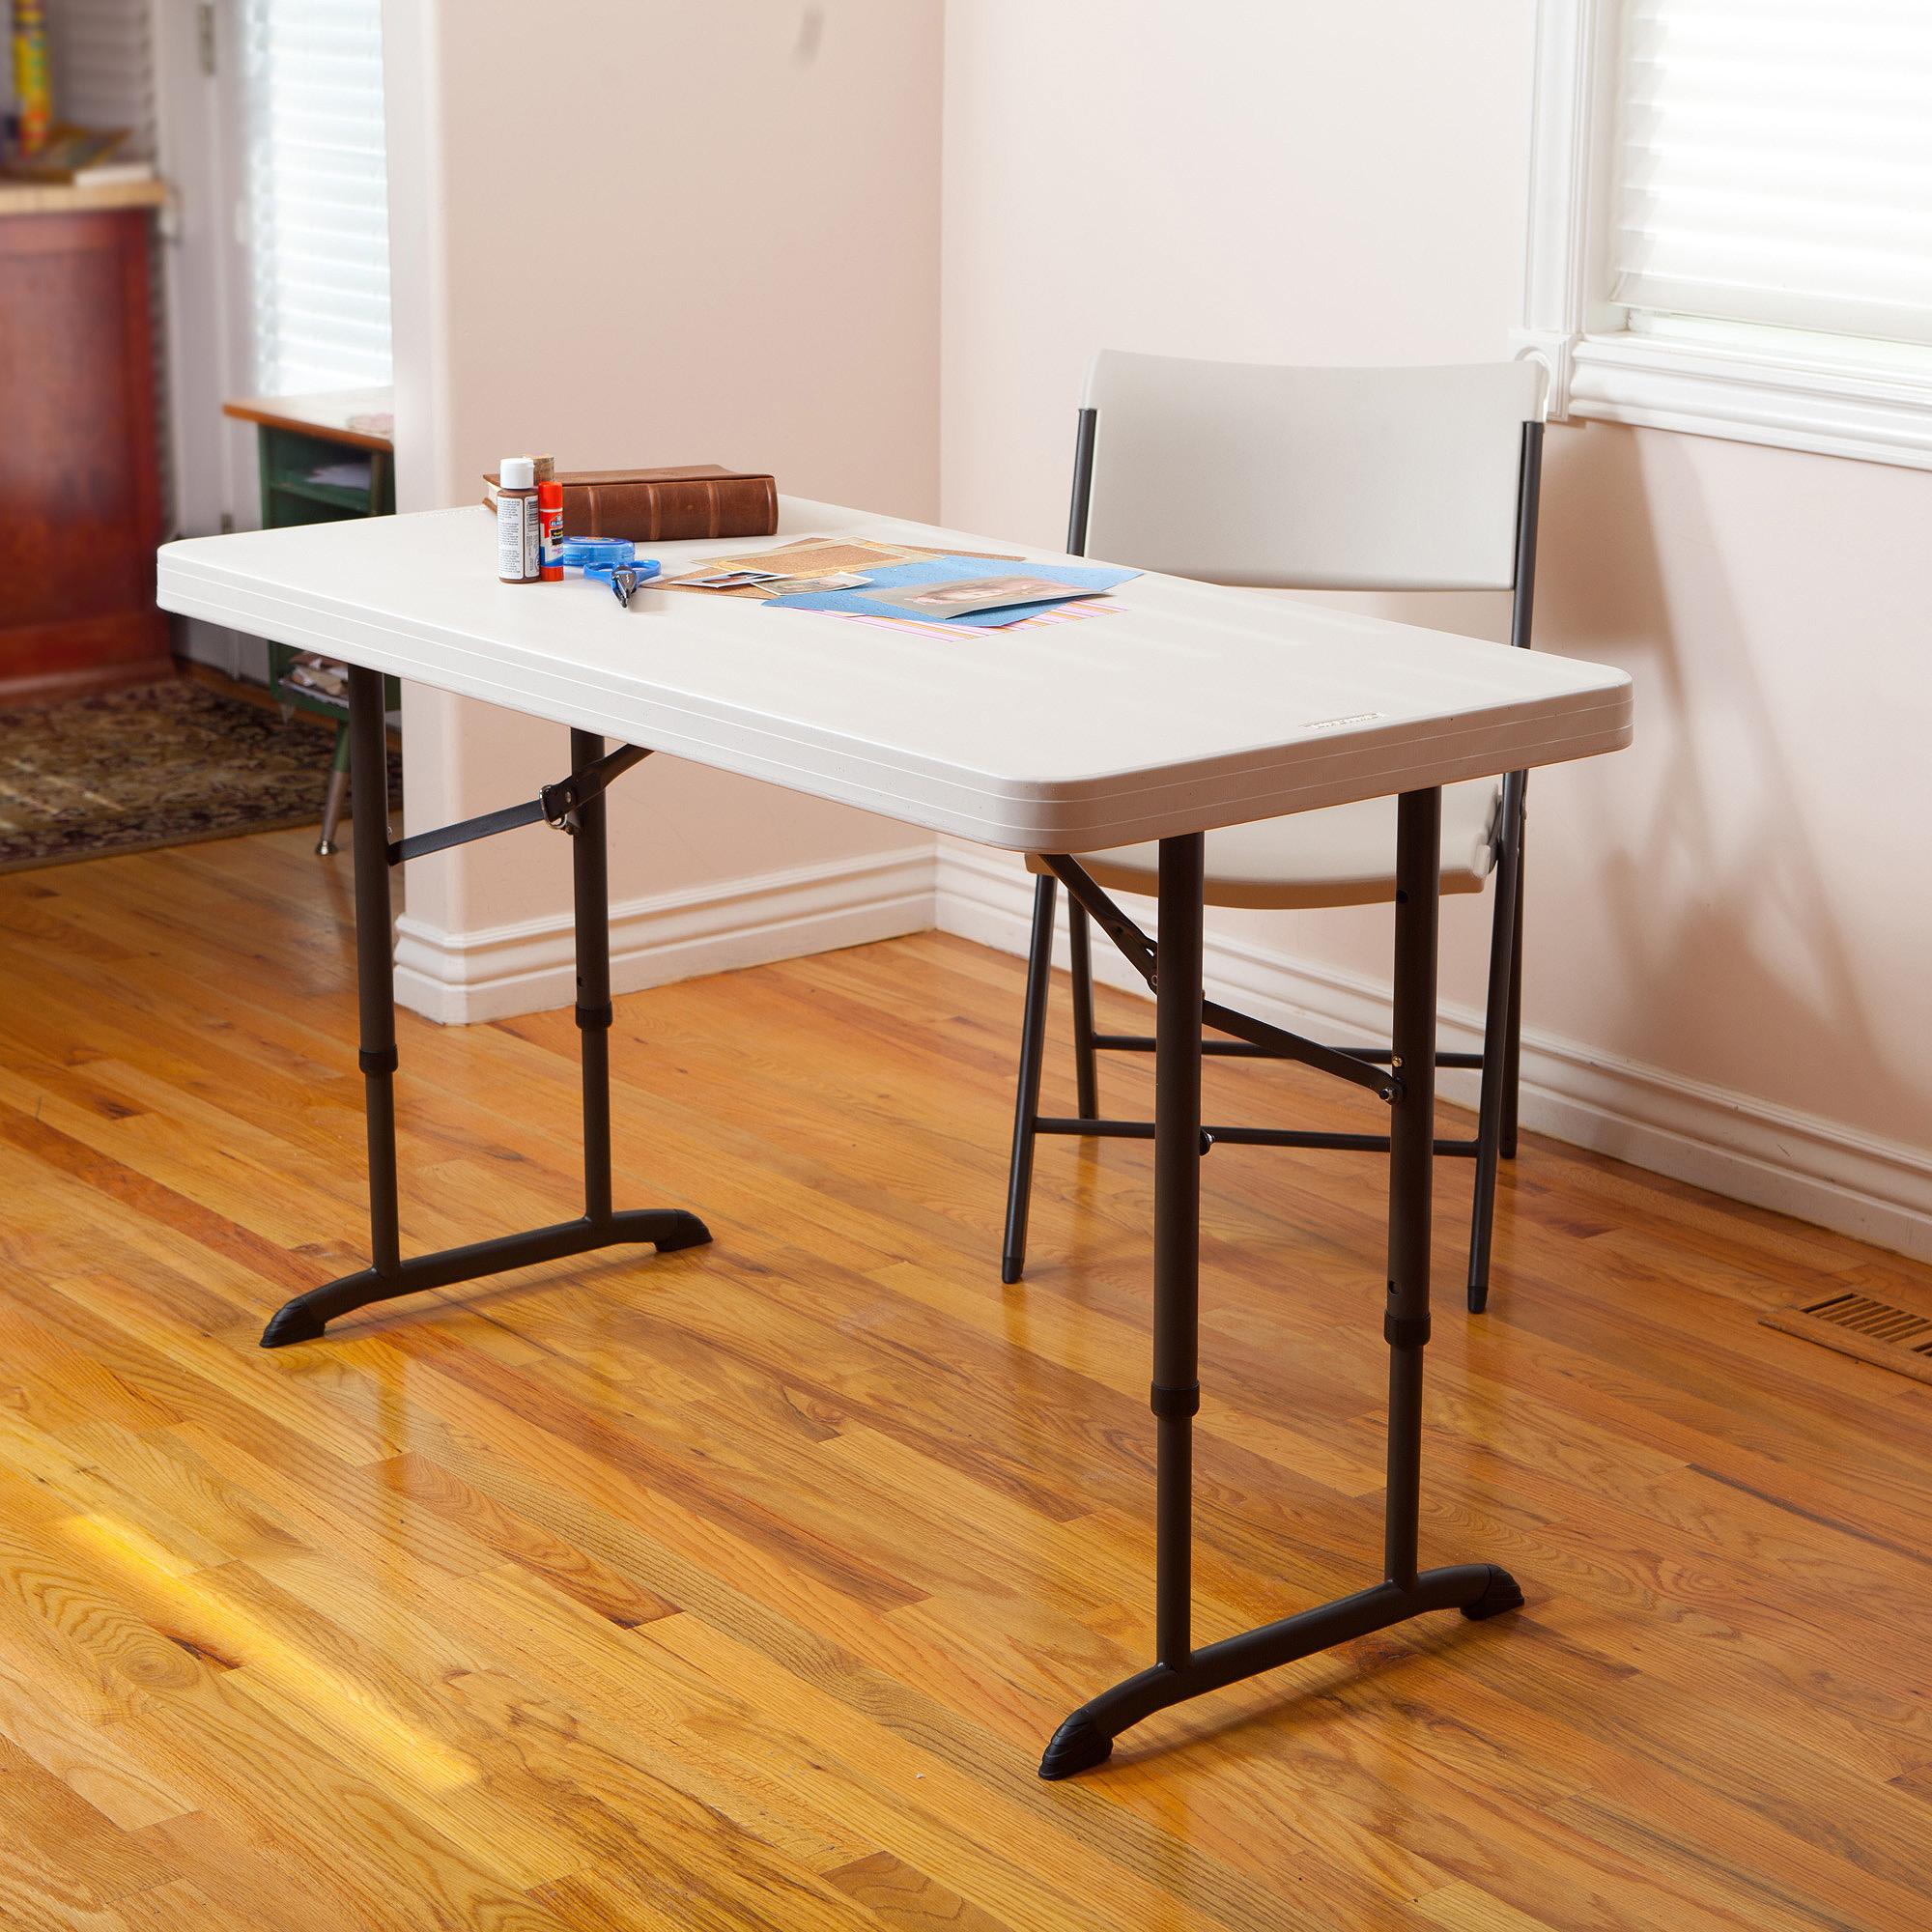 tables cutout contour foldable table folding